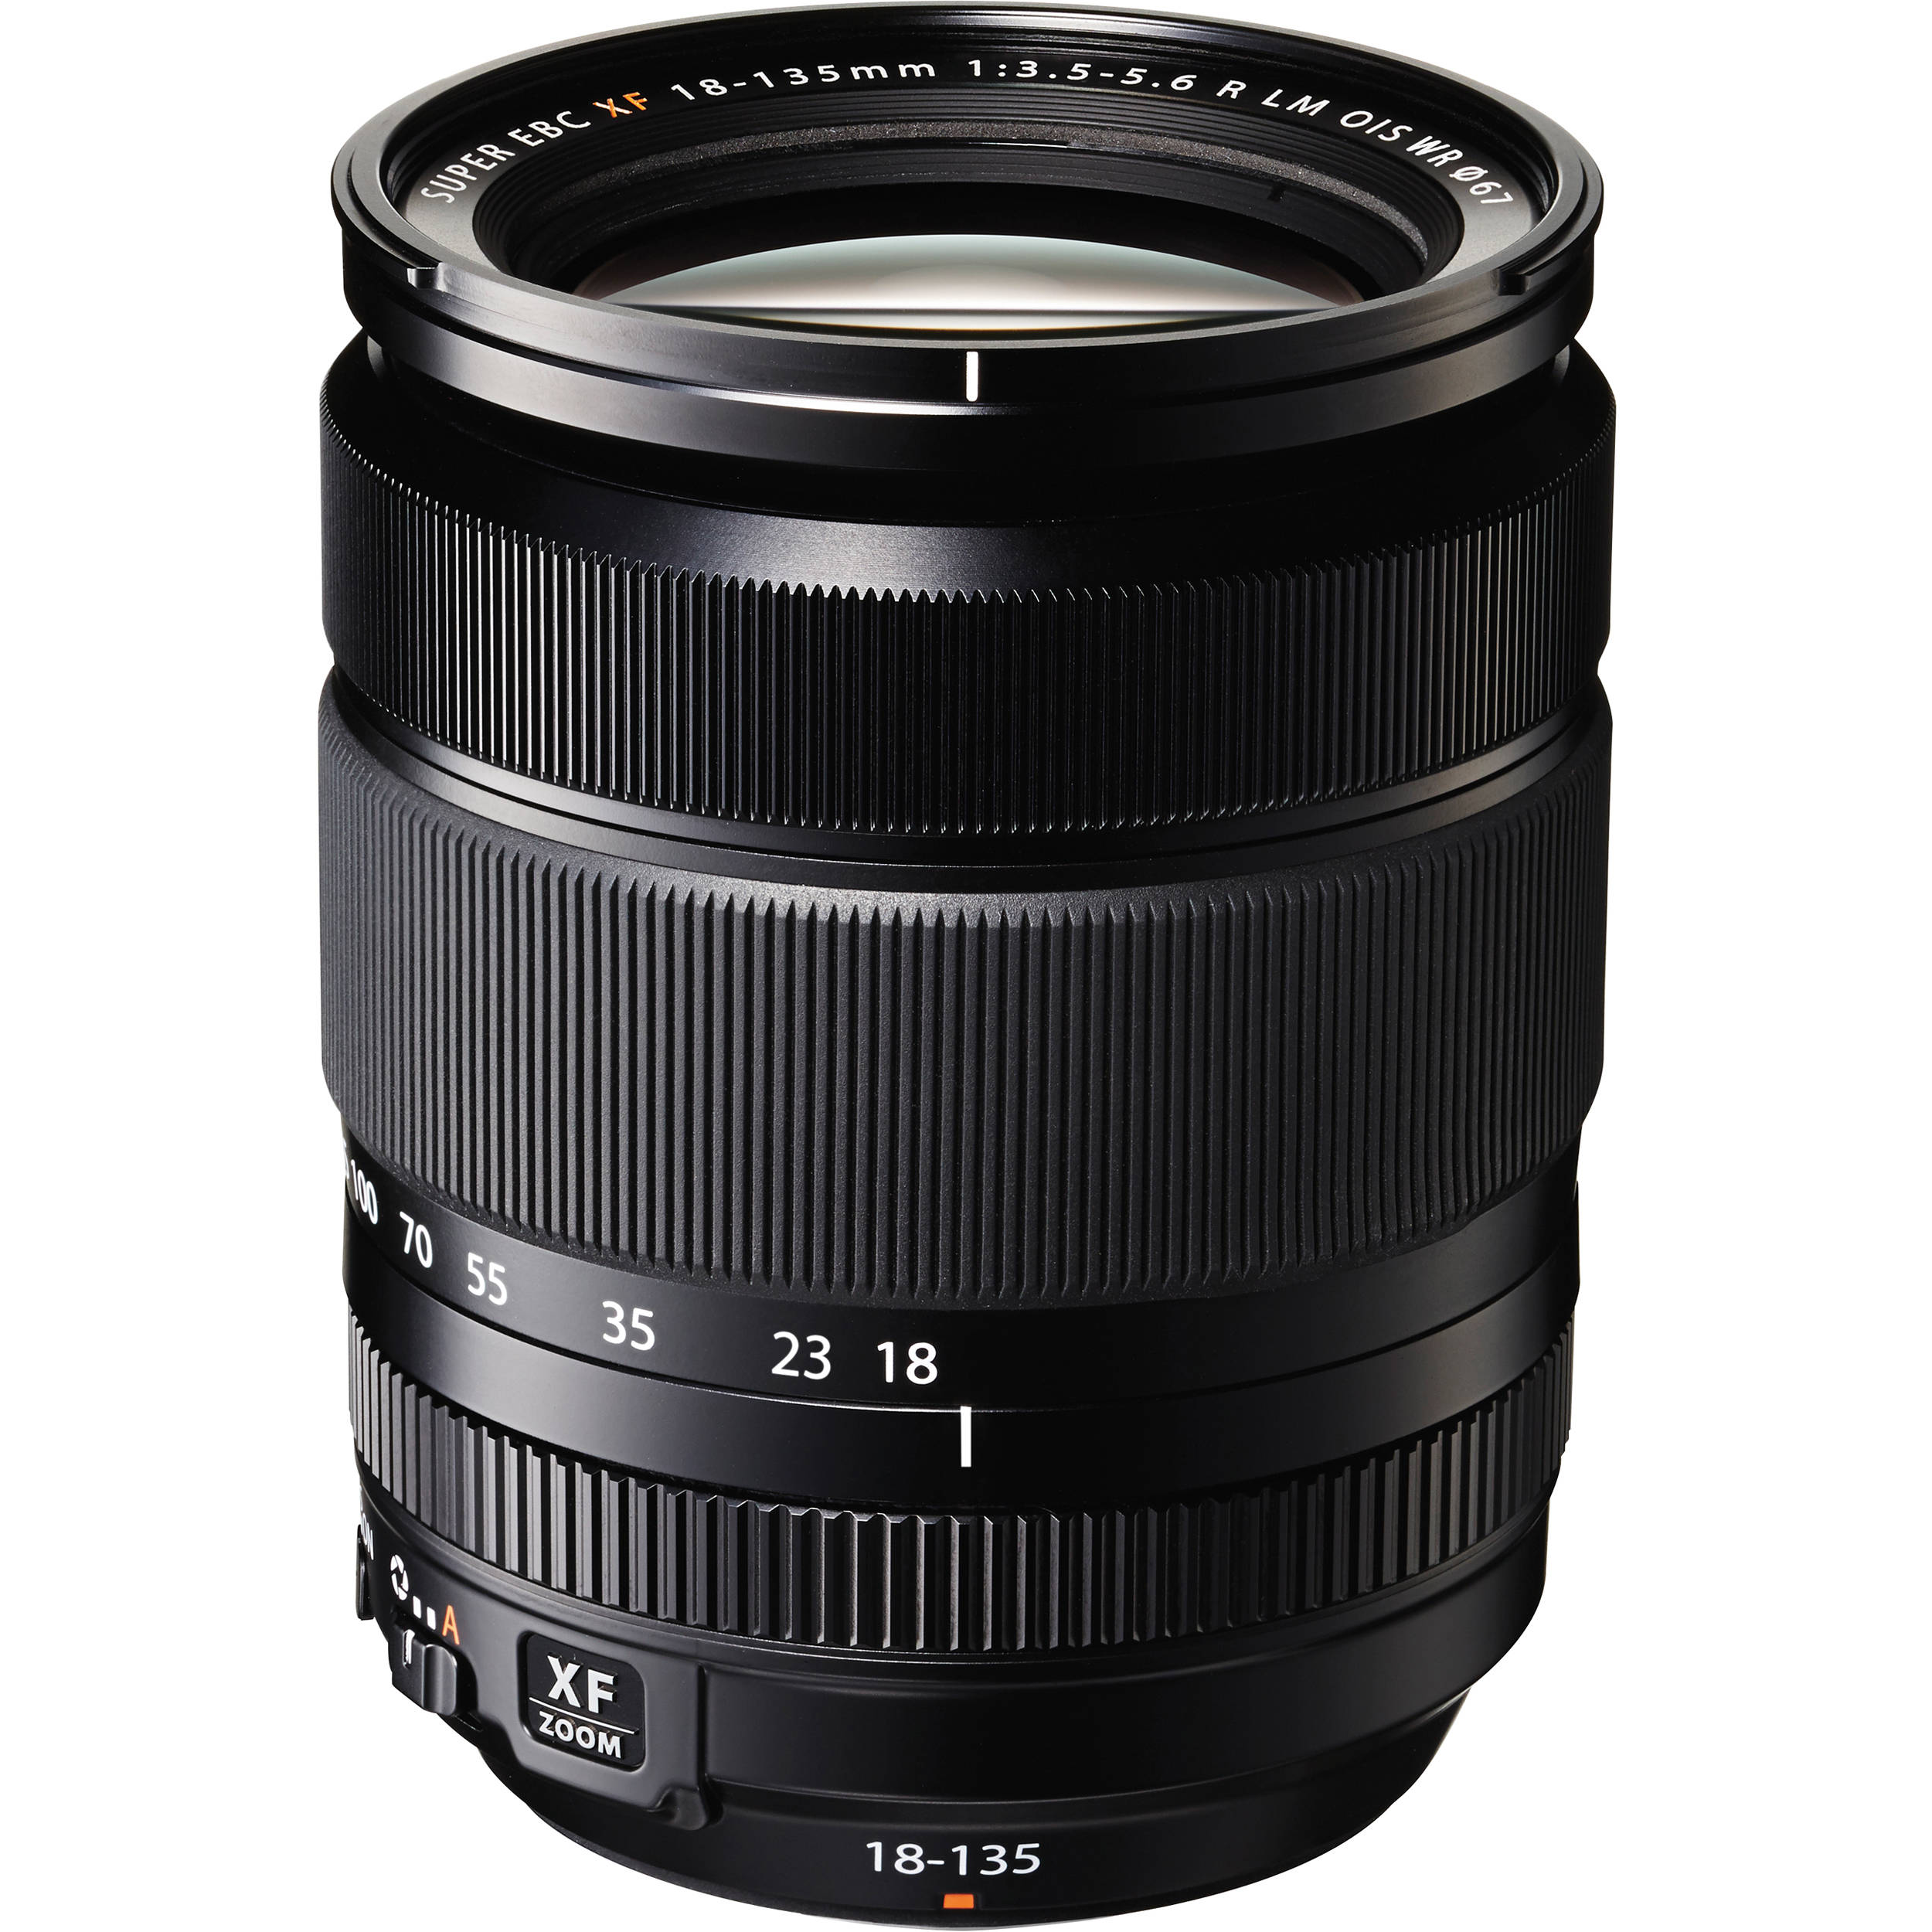 Fuji X Wedding Photography: Fuji 18-135mm F/3.5-5.6 R XF LM OIS WR Lens Fujifilm